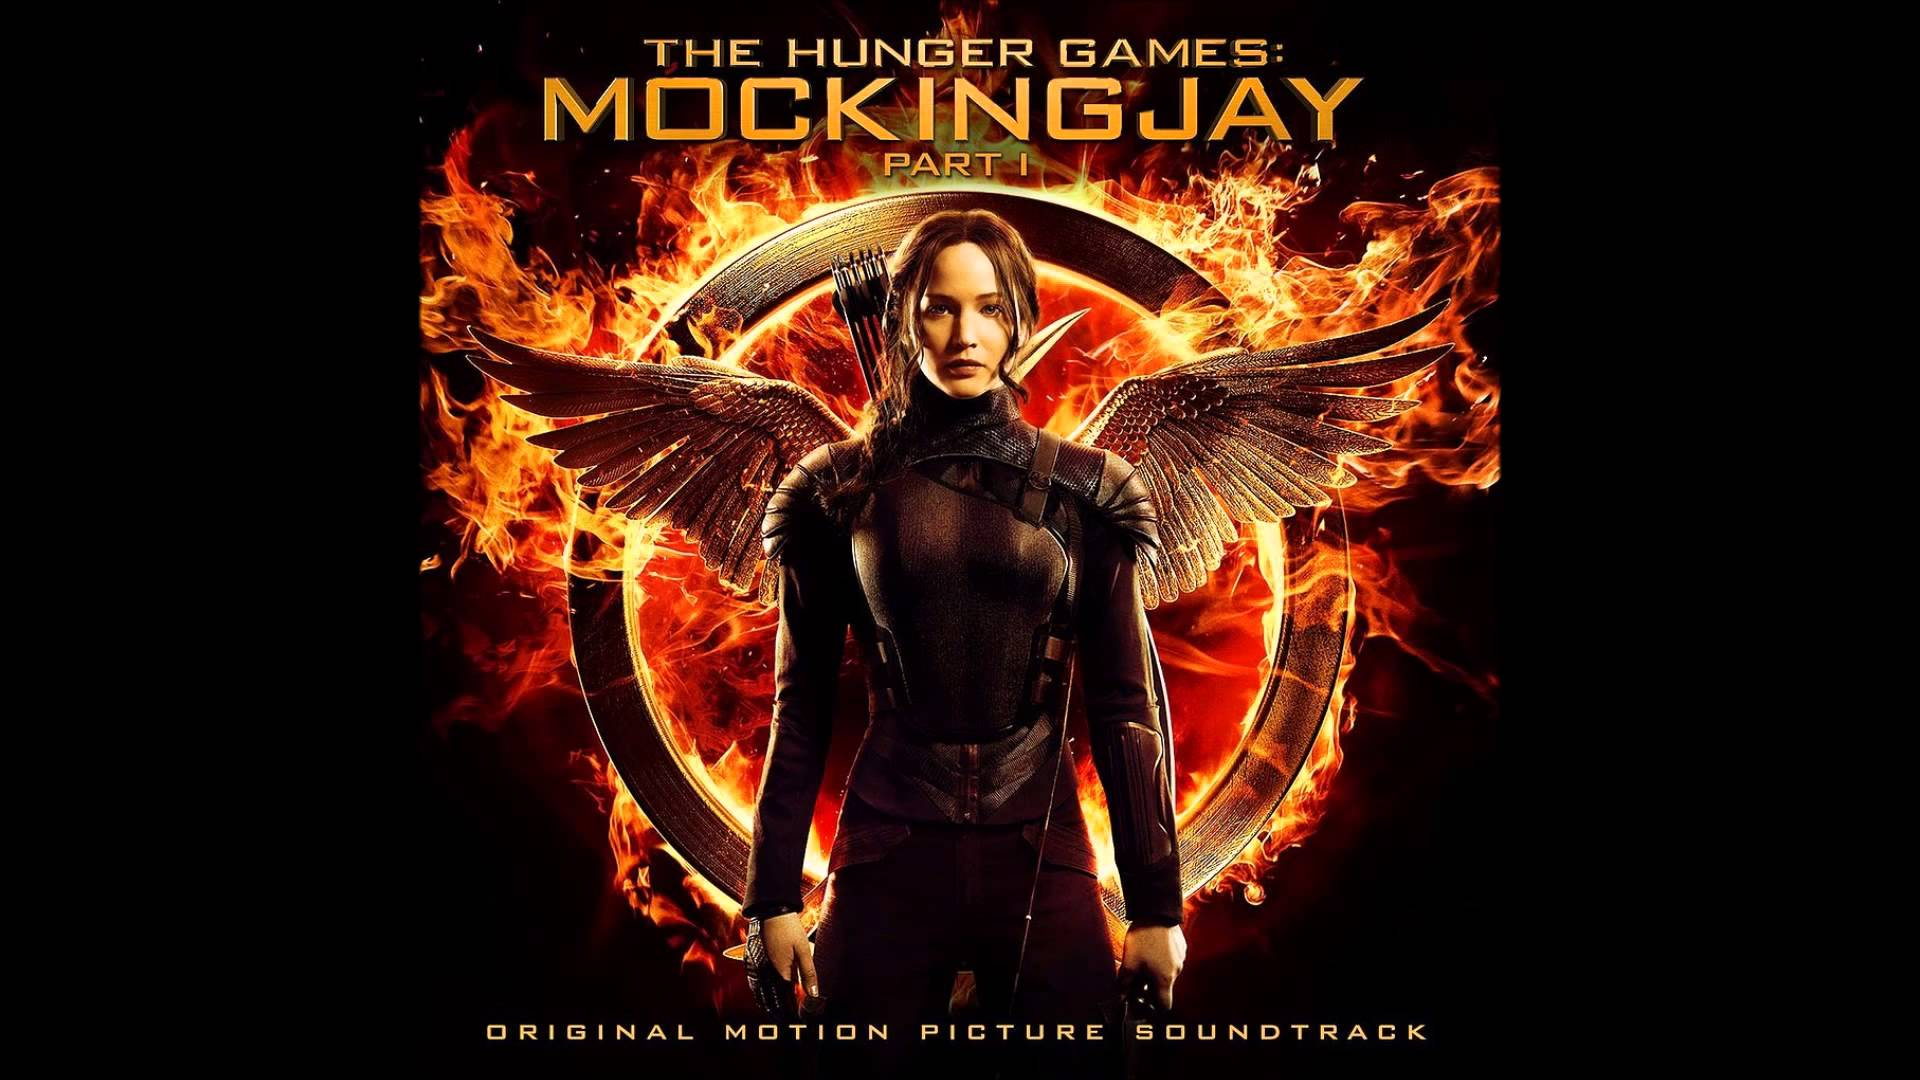 The Hunger Games Mockingjay Part 1 Wallpapers Movie Hq The Hunger Games Mockingjay Part 1 Pictures 4k Wallpapers 2019